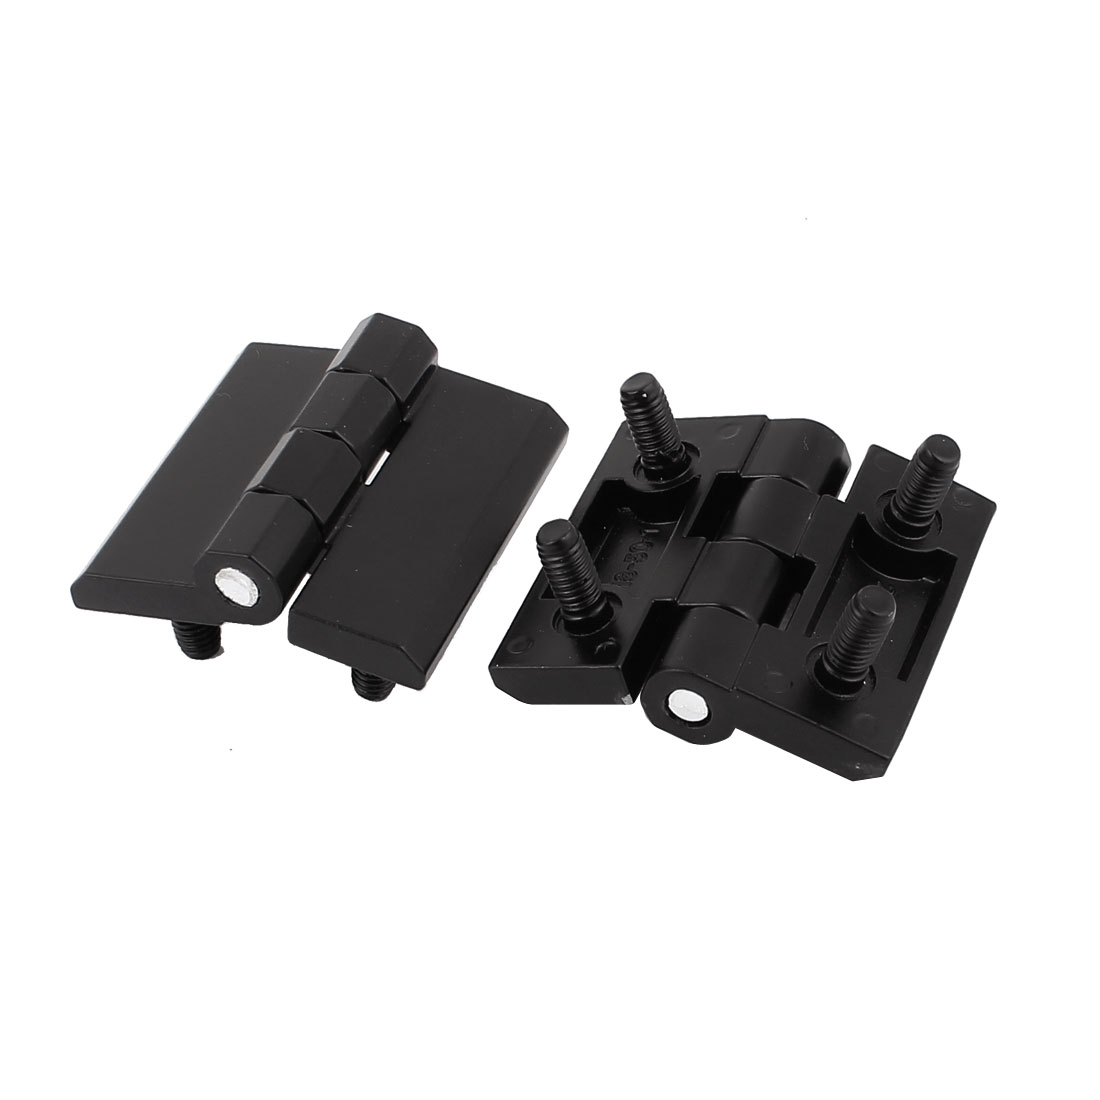 Cabinet Closet 50x50mm Screw On Type Metal Door Butt Hinge Black 2pcs